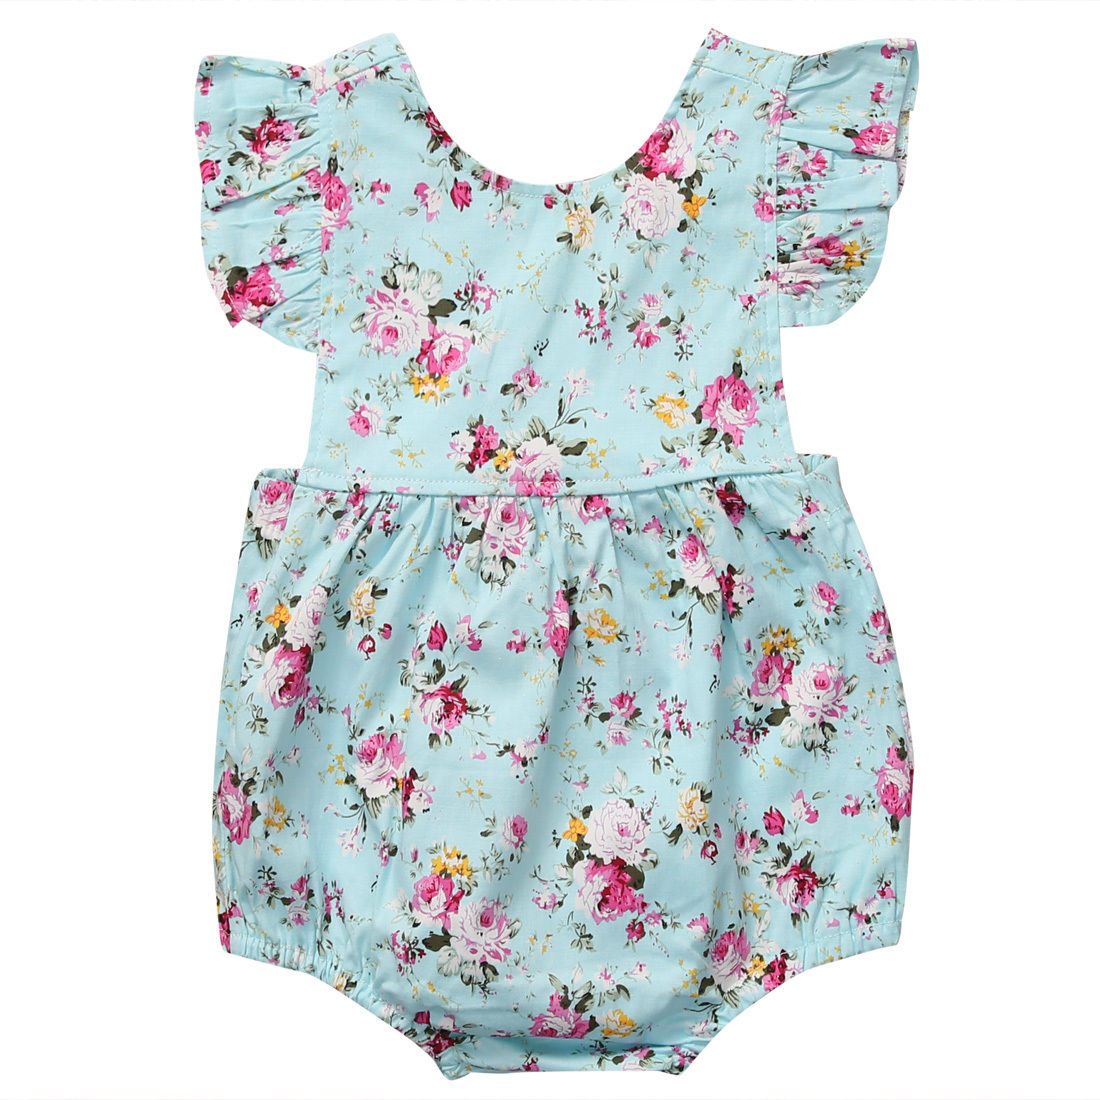 2017 Floral Newborn Baby Girl Romper Ruffles Sleeve Infant Bebes Princess Girls Jumpsuit Outfits Sunsuit Children Clothes 2017 floral baby romper newborn baby girl clothes ruffles sleeve bodysuit headband 2pcs outfit bebek giyim sunsuit 0 24m